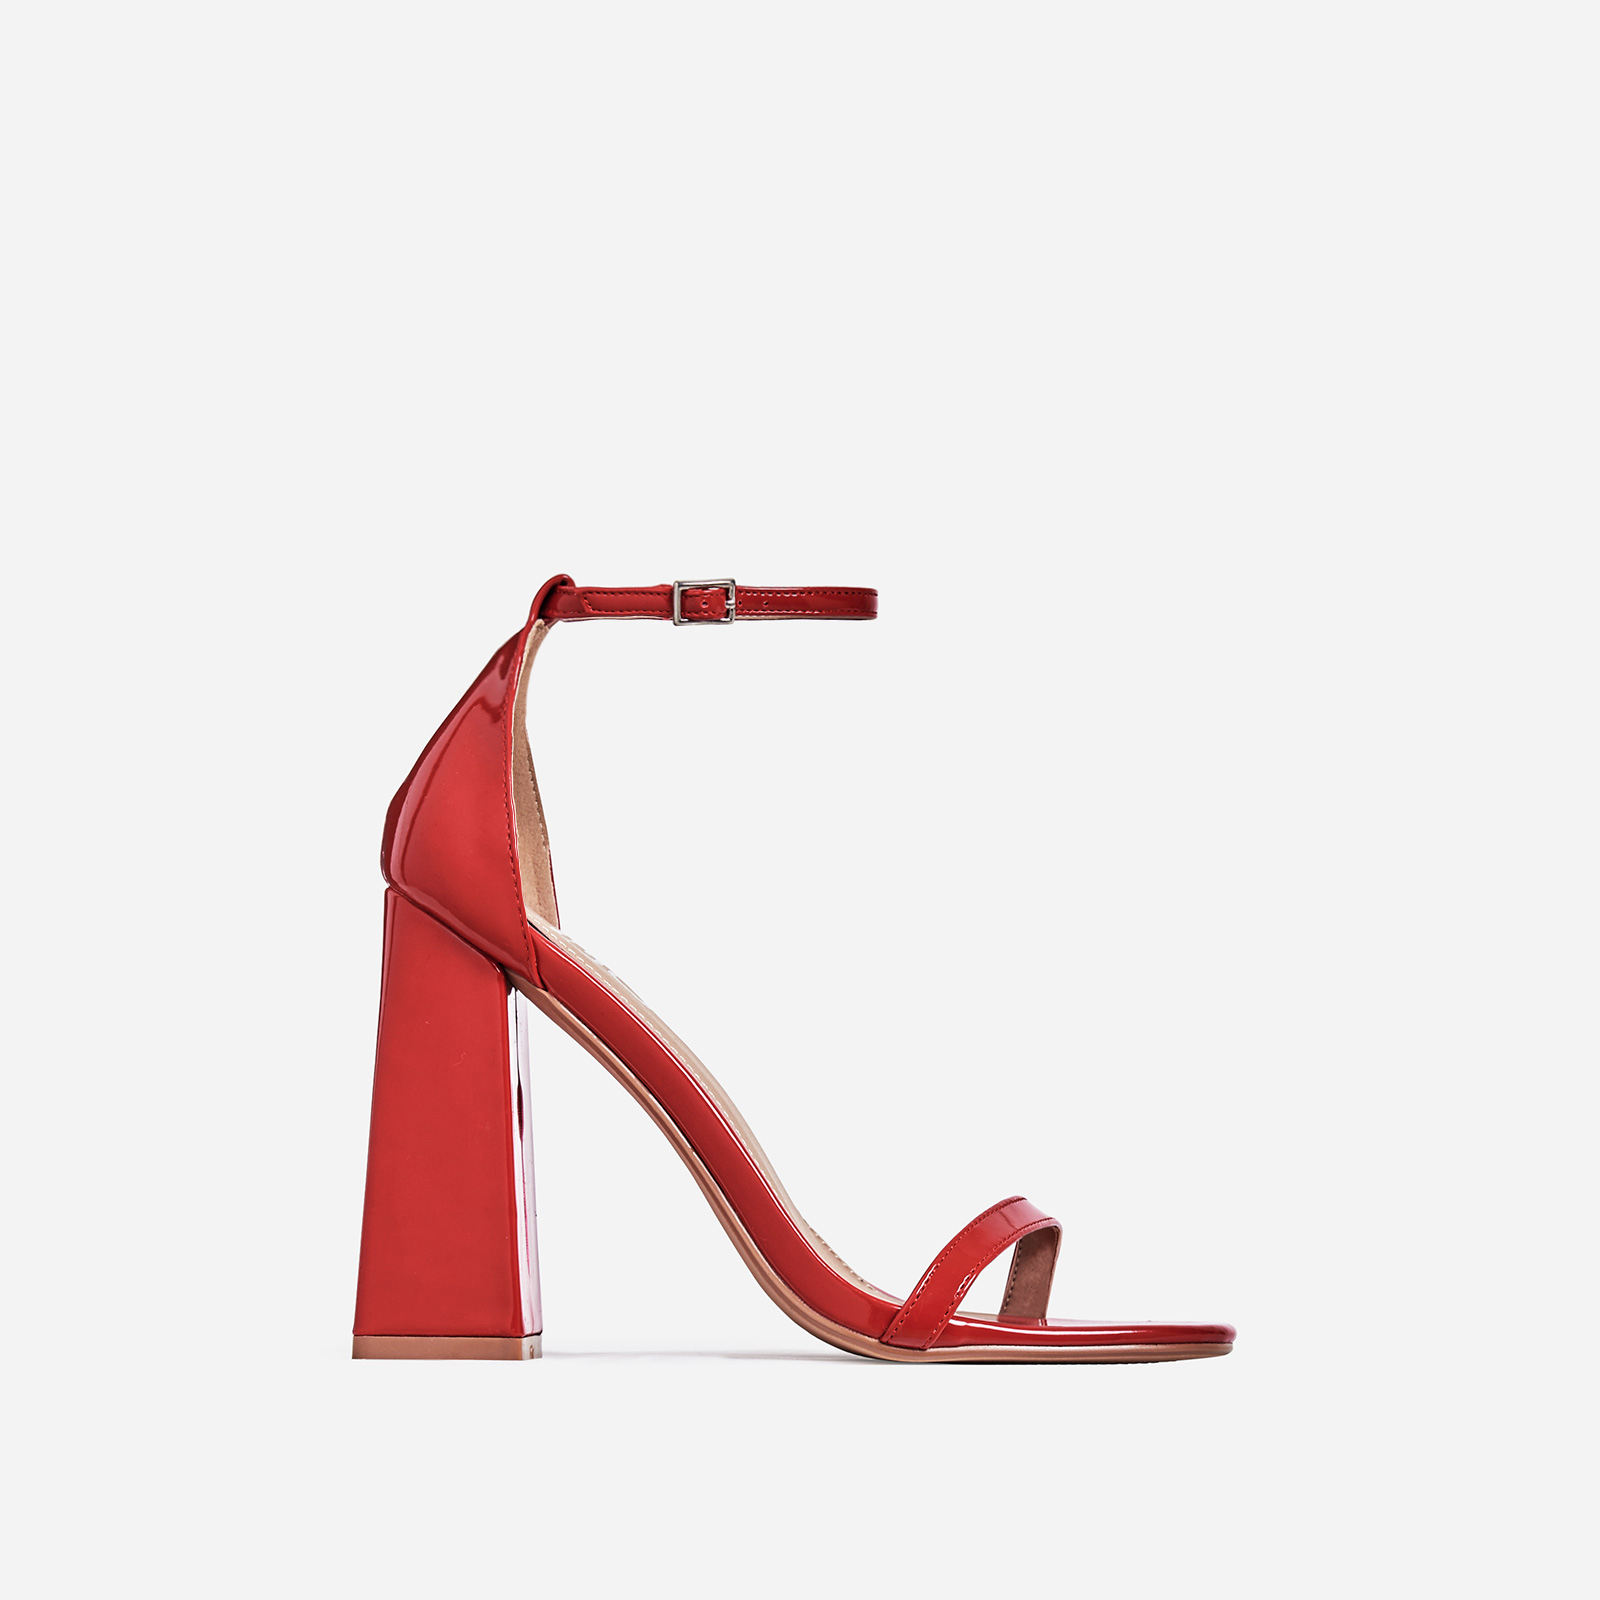 Atomic Square Block Heel In Red Patent